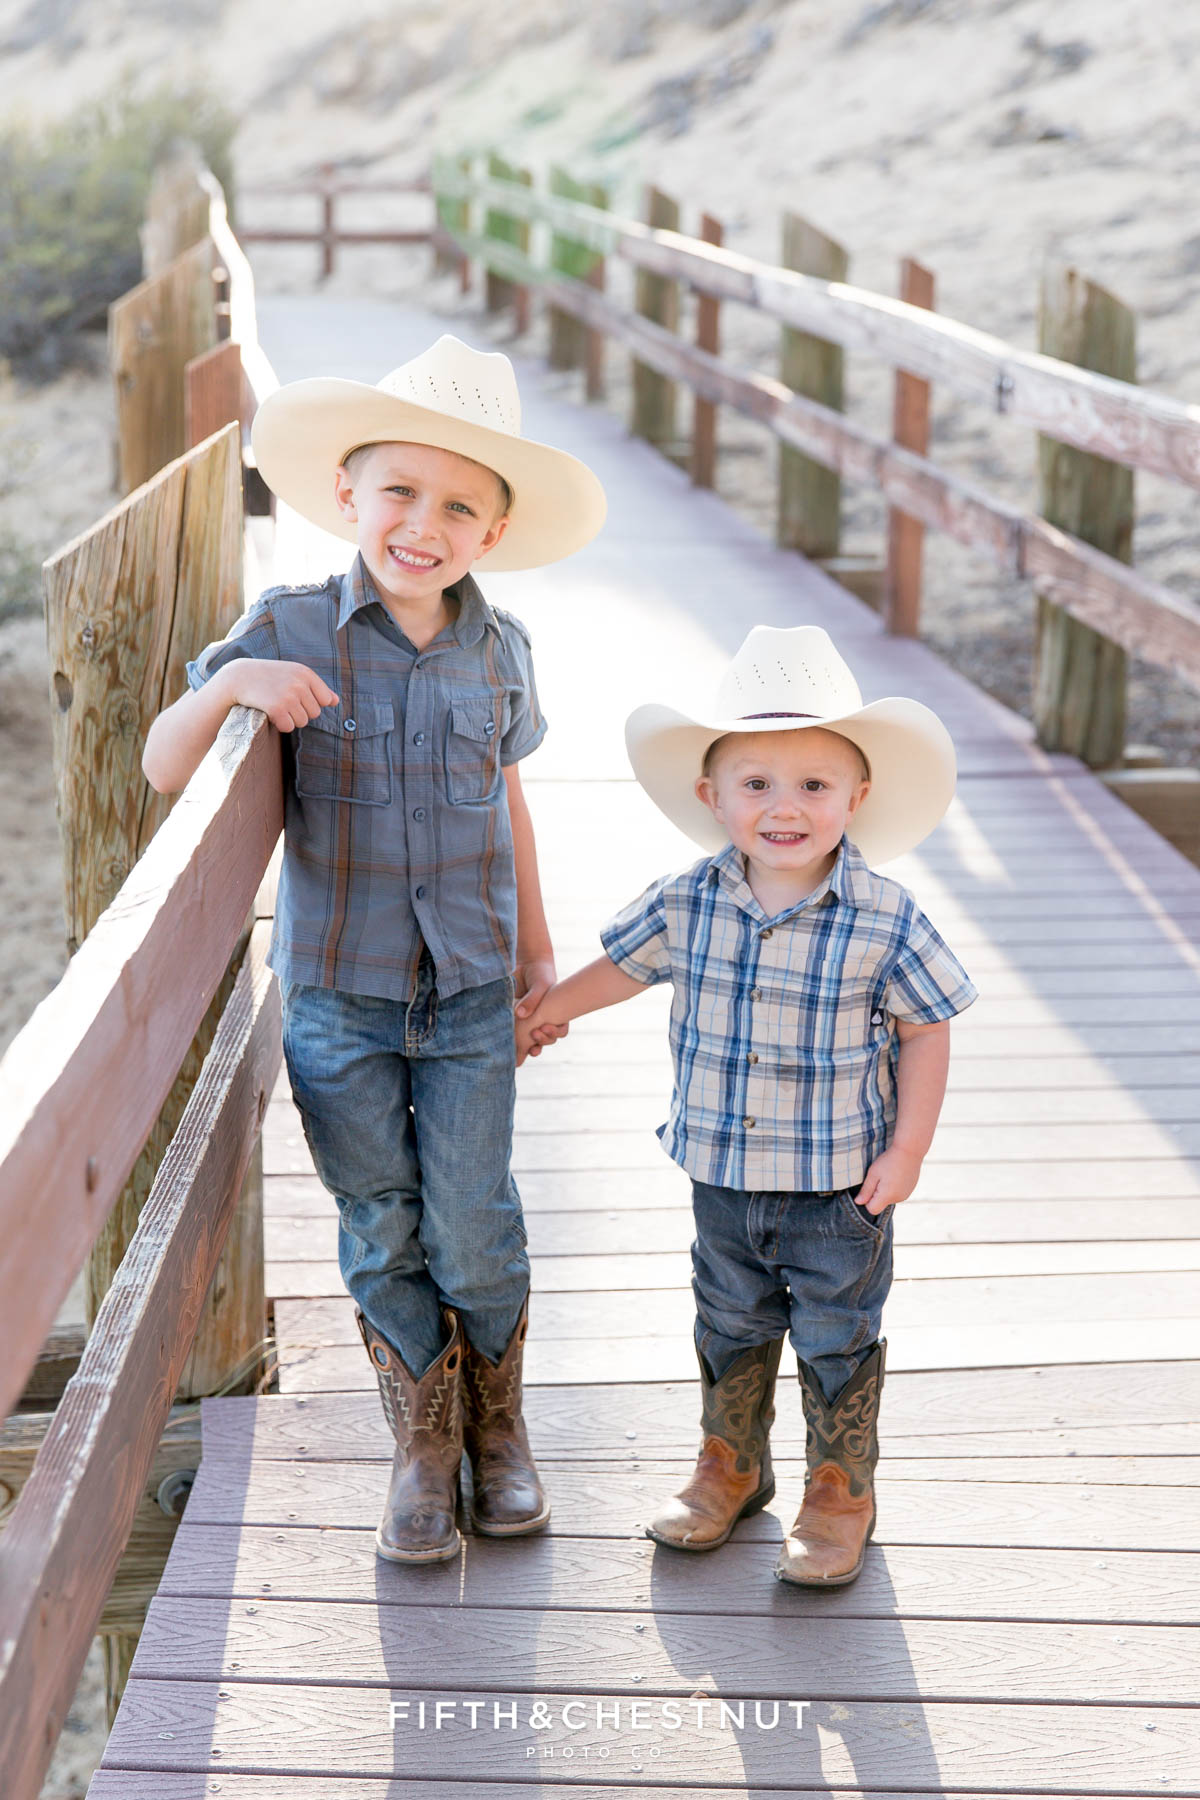 two little boys holding hands on a wooden path wearing plaid shits and cowboy hats